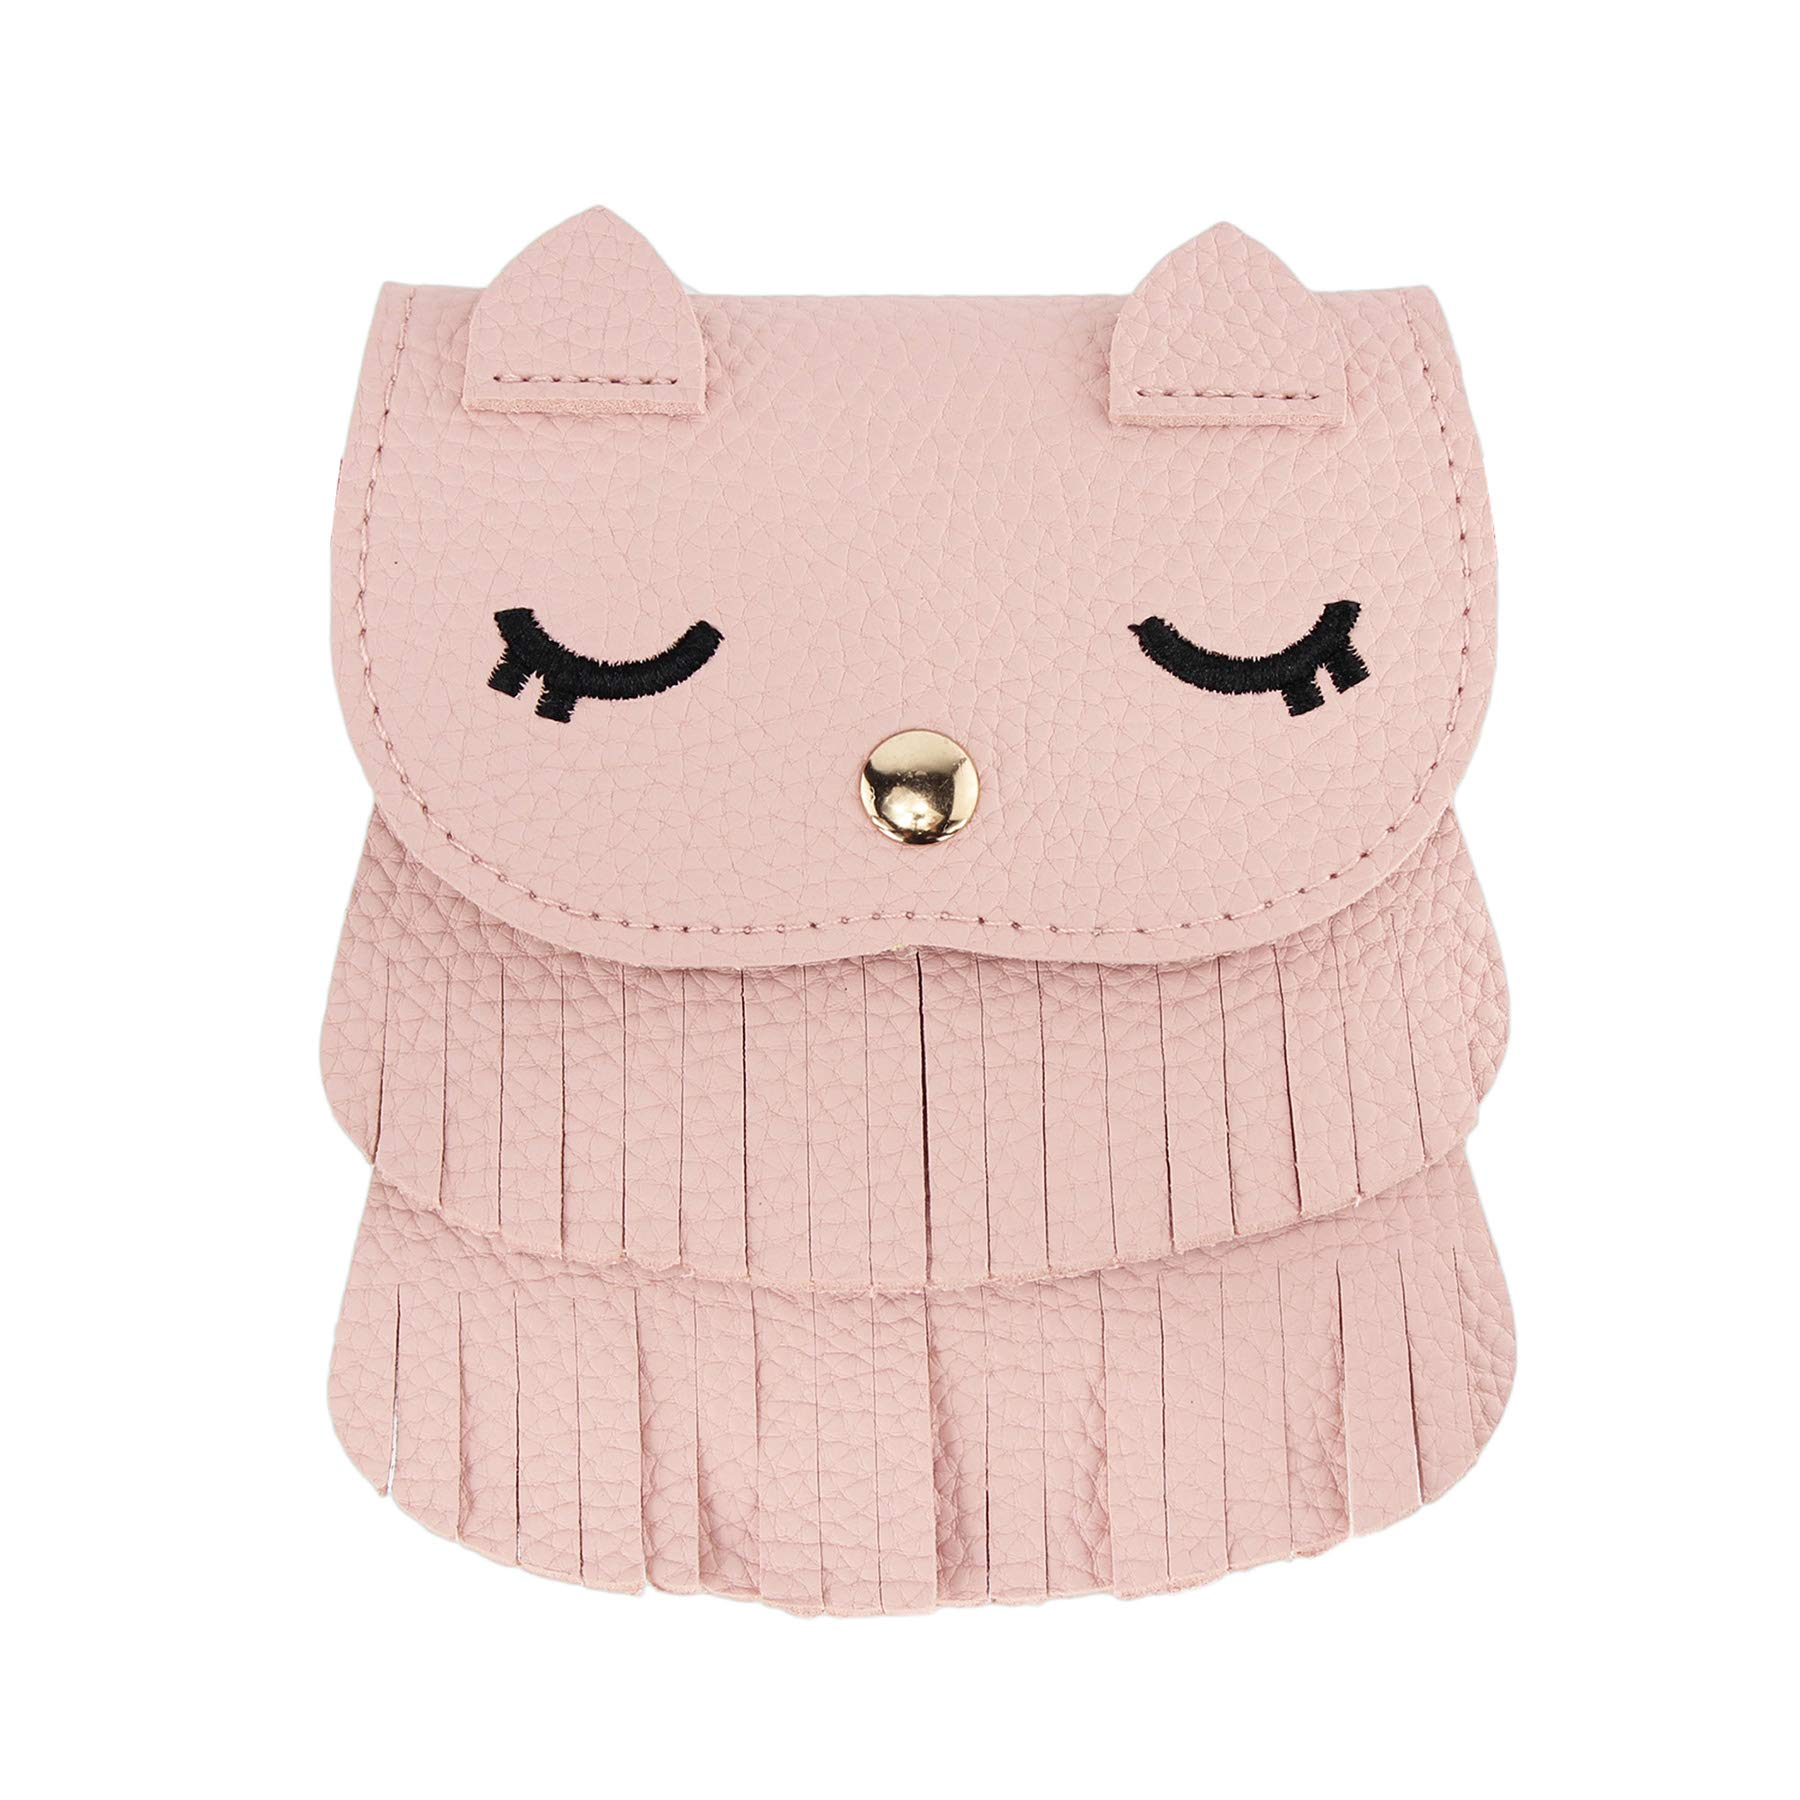 SteamedBun Girls Bags and Purses for Kids Crossbody Mini Halloween Owl Wallet with Tassel (Pink_large)